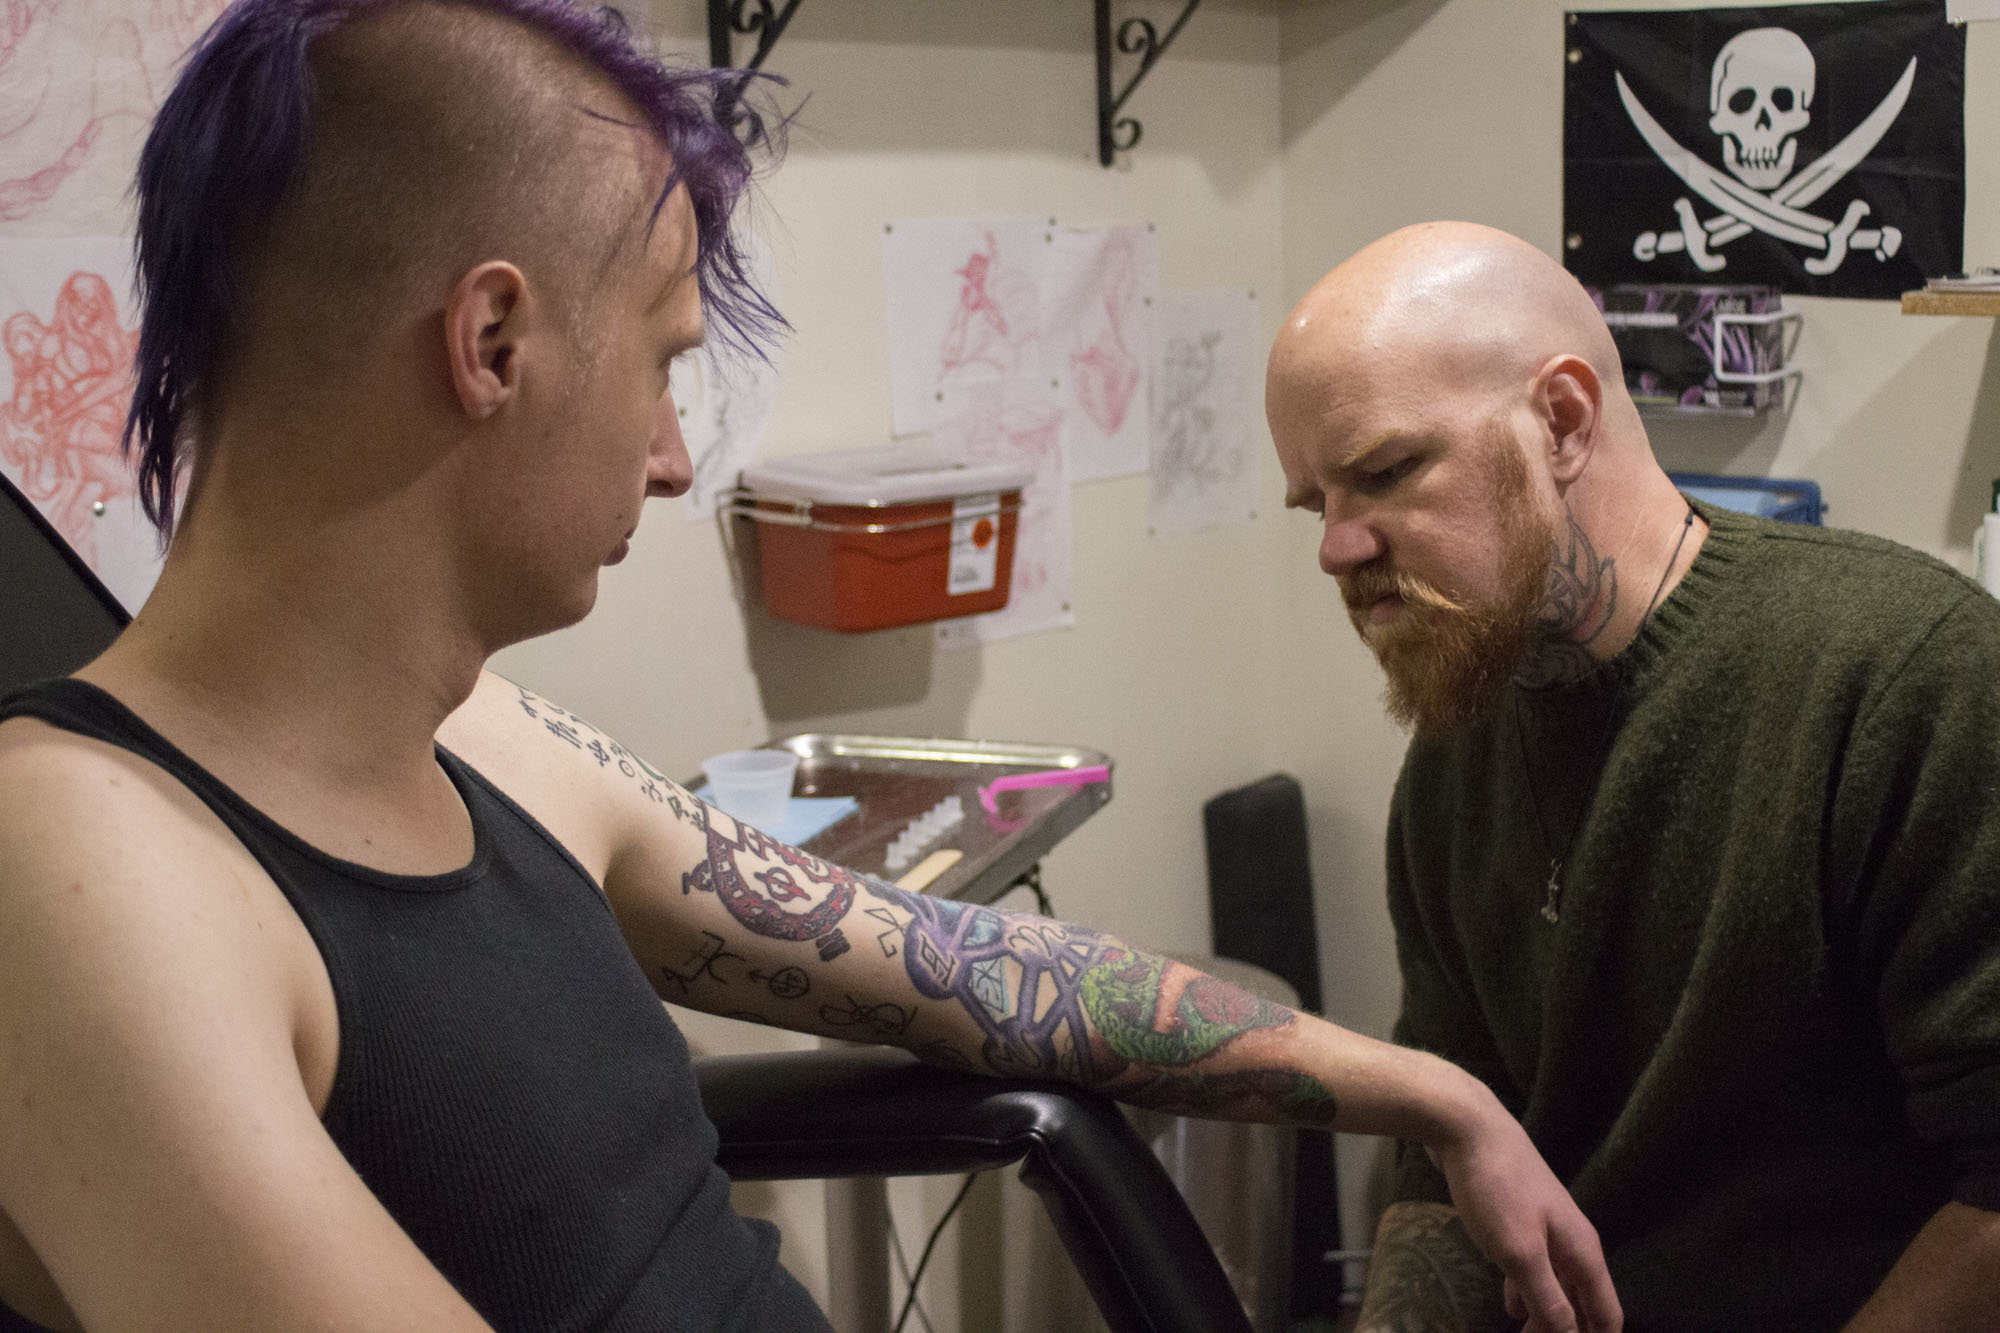 """Bruce examines his progress on Paterson's tattoo sleeve before deciding where he wants to pick up tattooing. Bruce has been working on tattooing Paterson's sleeve for almost two years. """"He won't let me tell him my other tattoo plans until we finish this,"""" Paterson said half-grudgingly."""